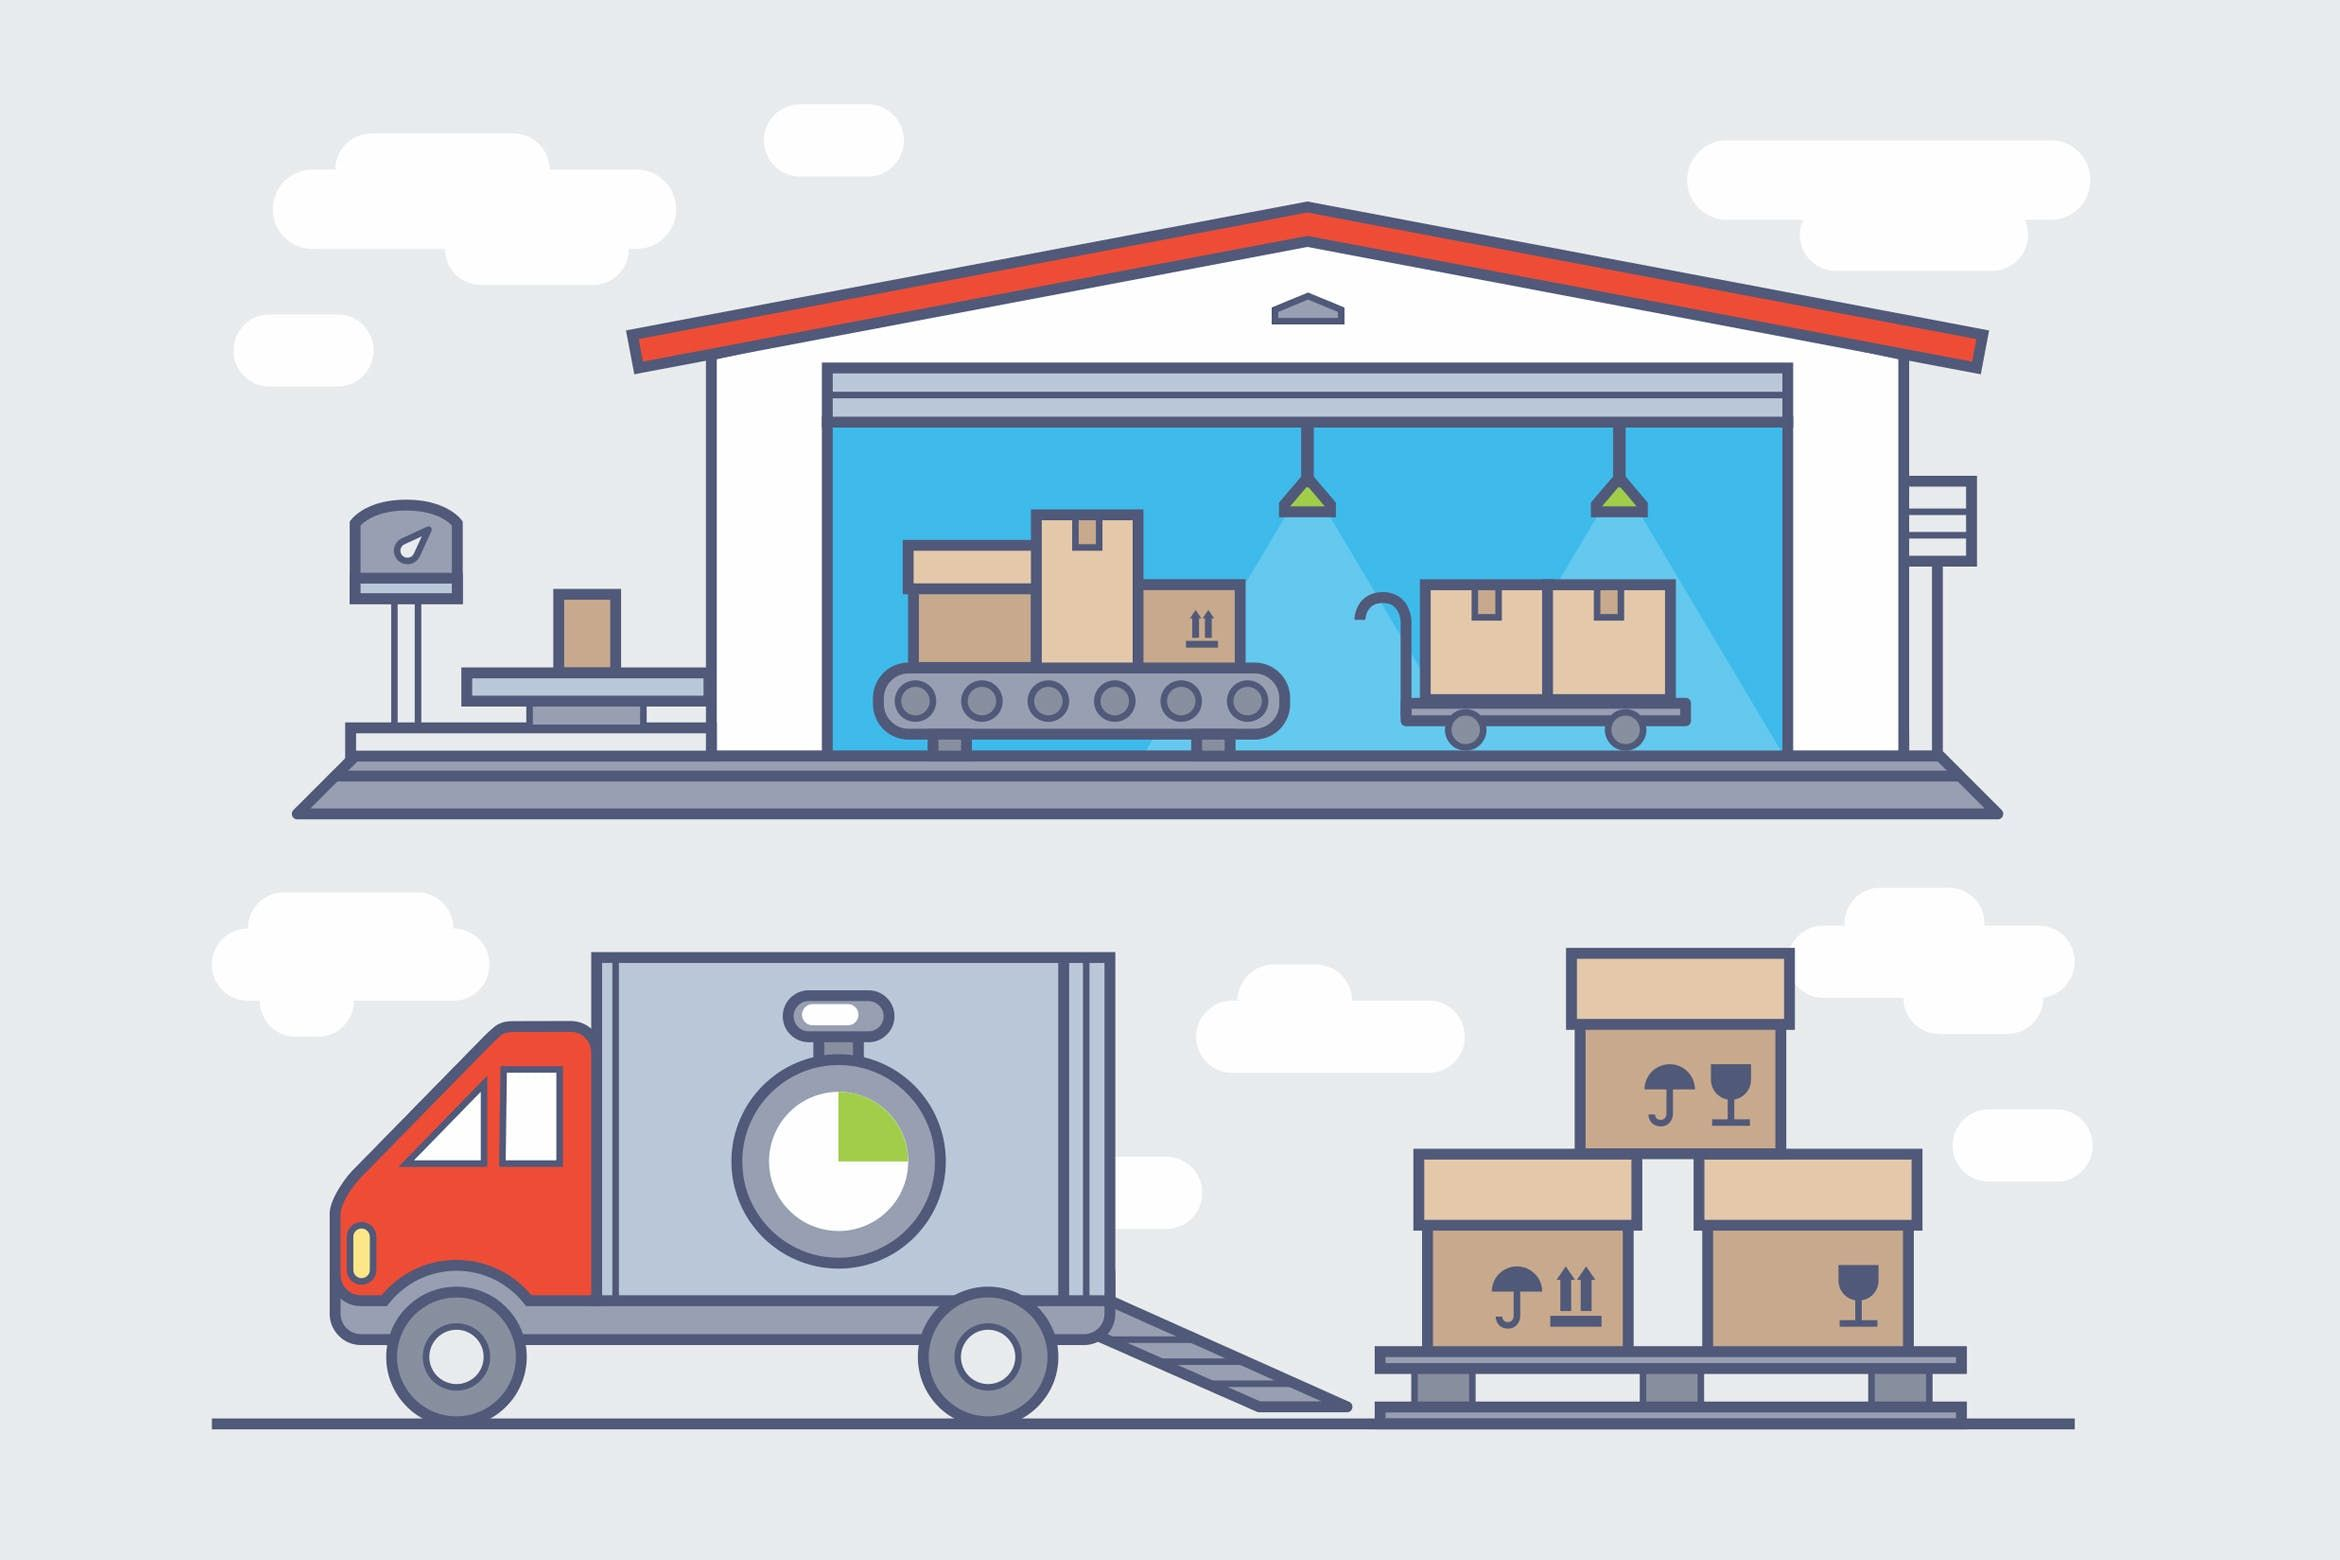 Warehouse Clipart #warehouse, #clipart, #logistics, #storage.